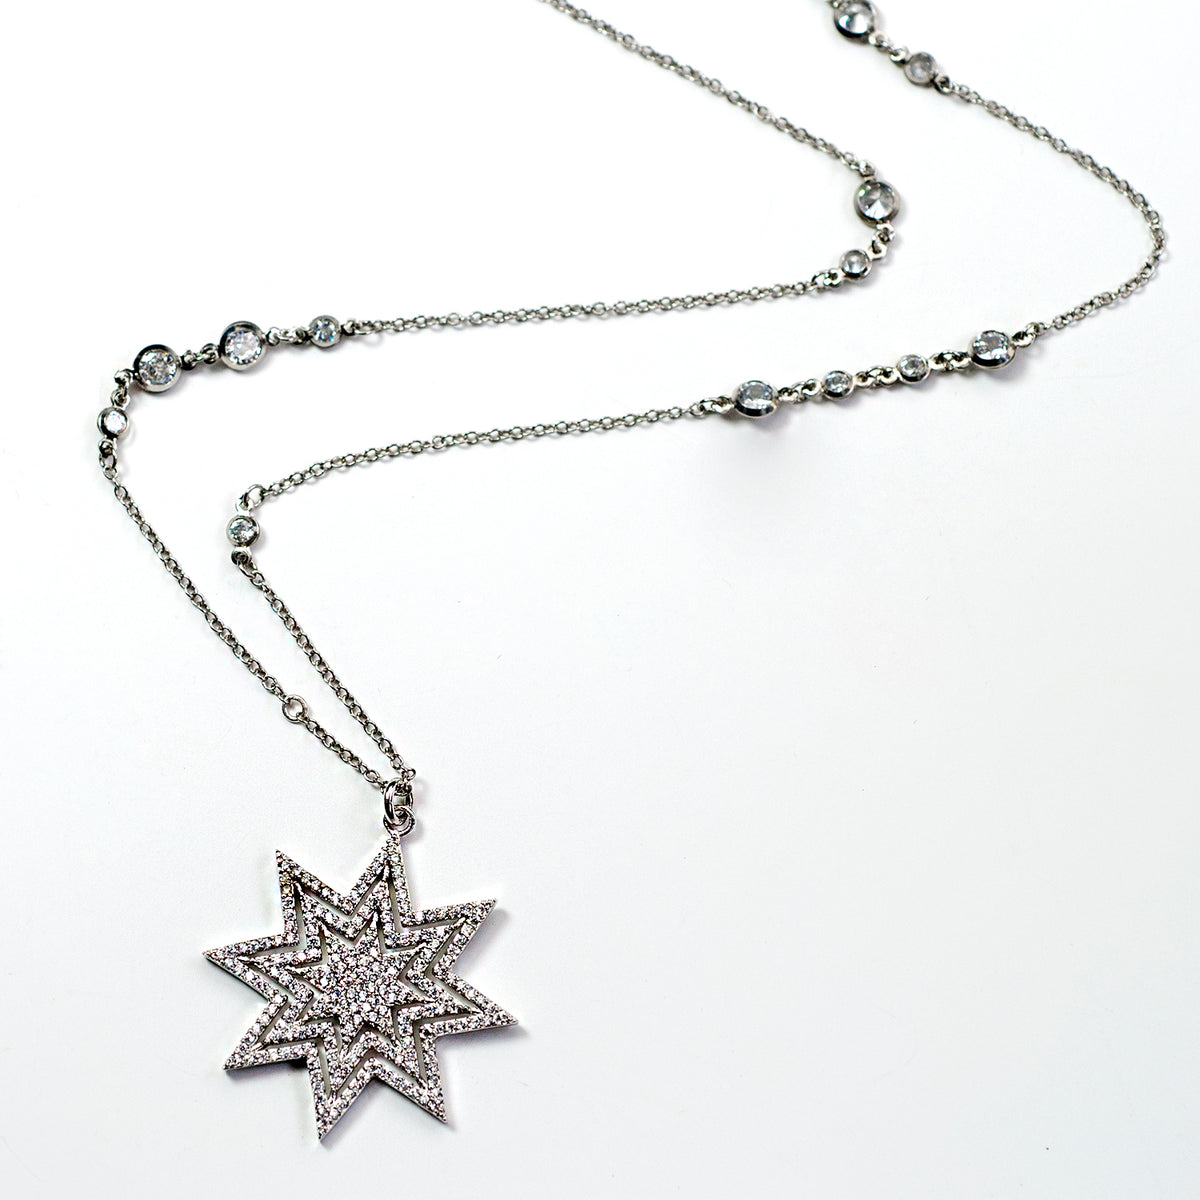 Star Blaze Necklace N1707 - Sweet Romance Wholesale